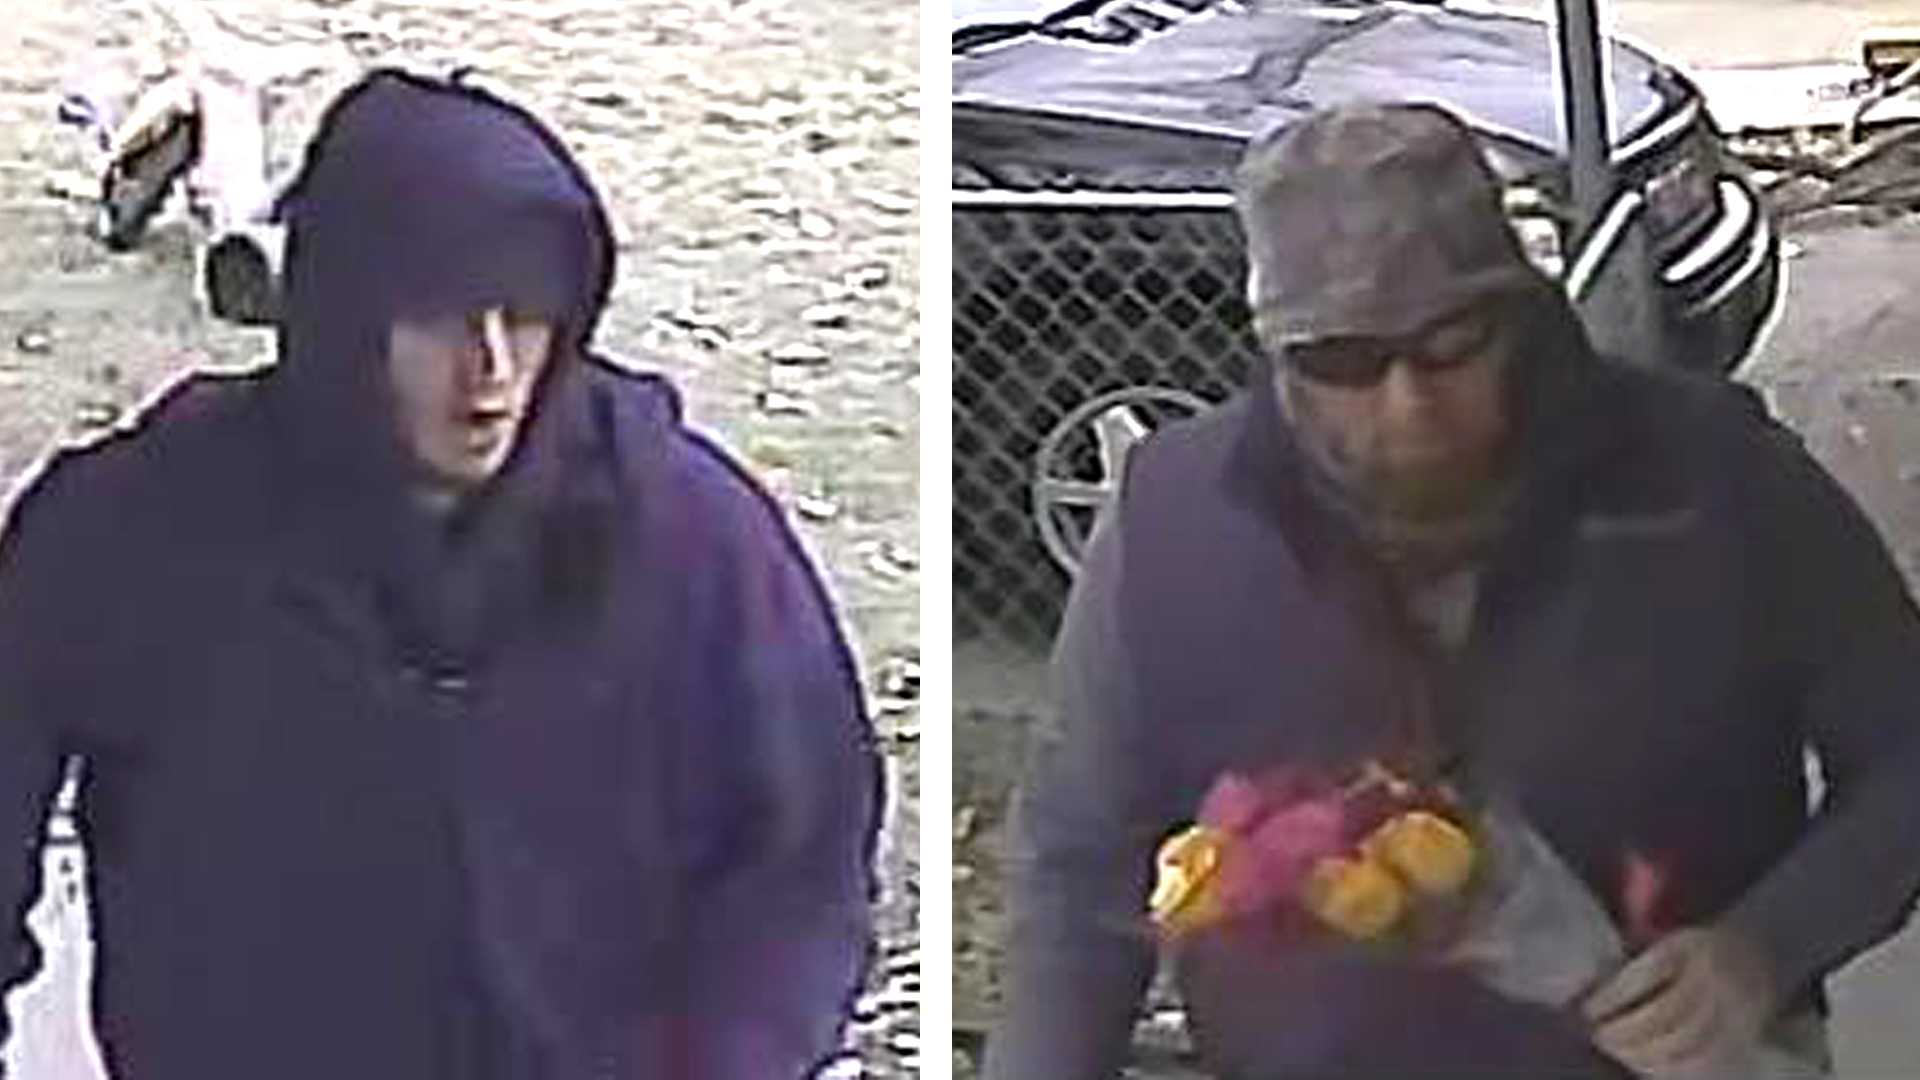 Placer County sheriff's investigators are looking for two men who broke into a Roseville area home on Wednesday, Feb. 1, 2017, and held a woman hostage while stealing valuables.